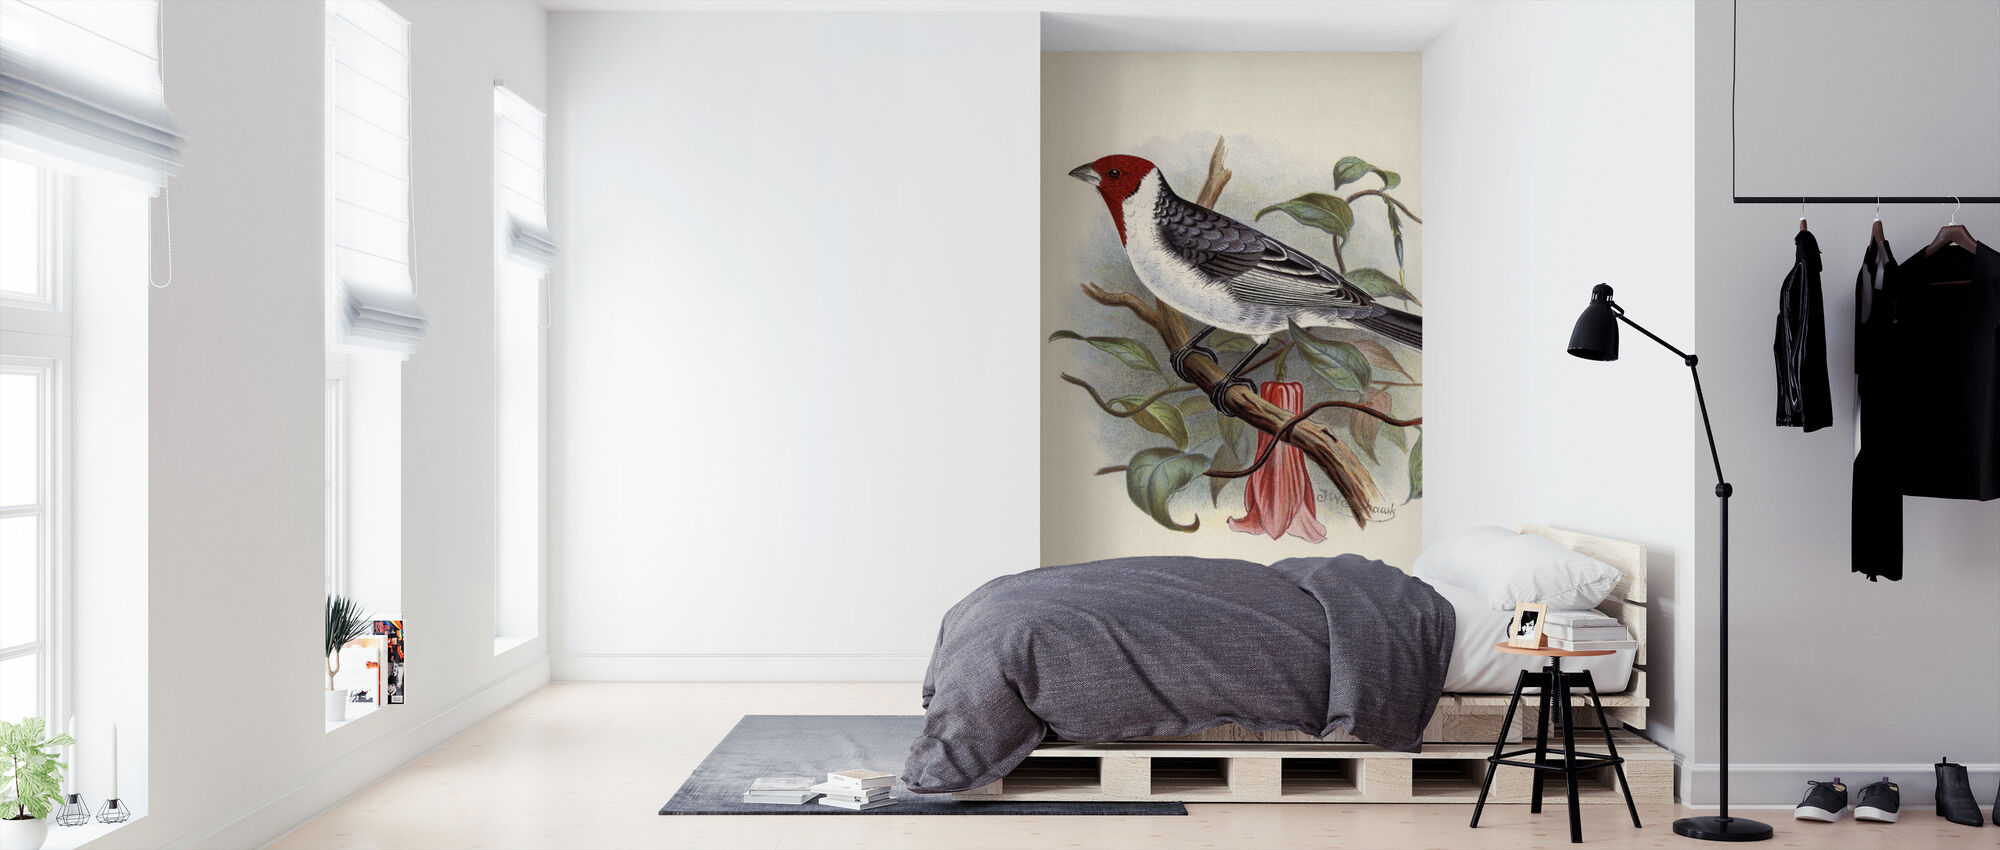 Foreign Finches - Frederick William Frohawk - Wallpaper - Bedroom